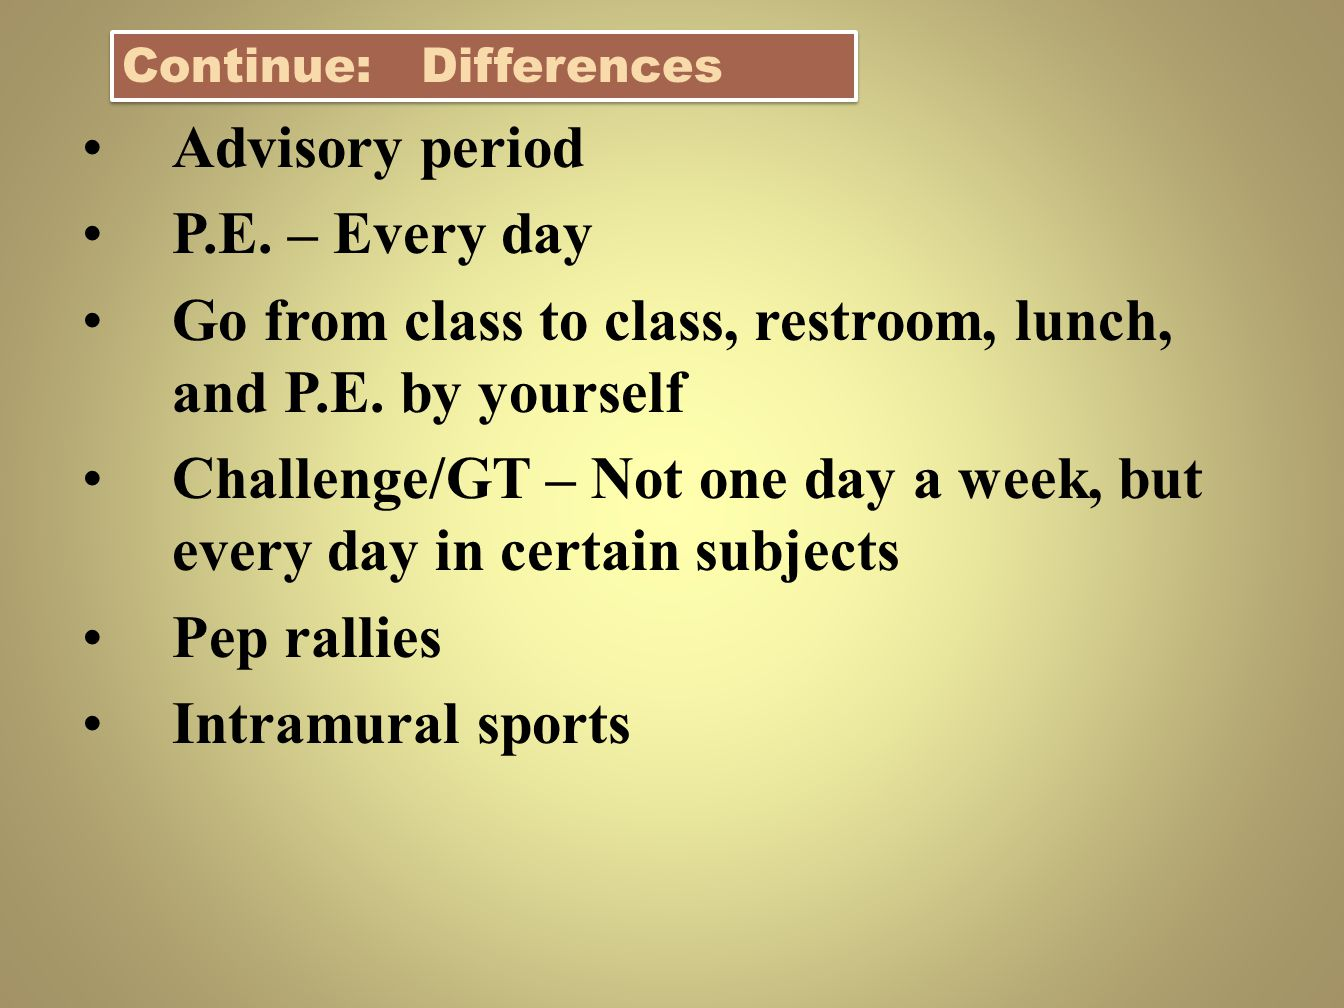 Go from class to class, restroom, lunch, and P.E. by yourself